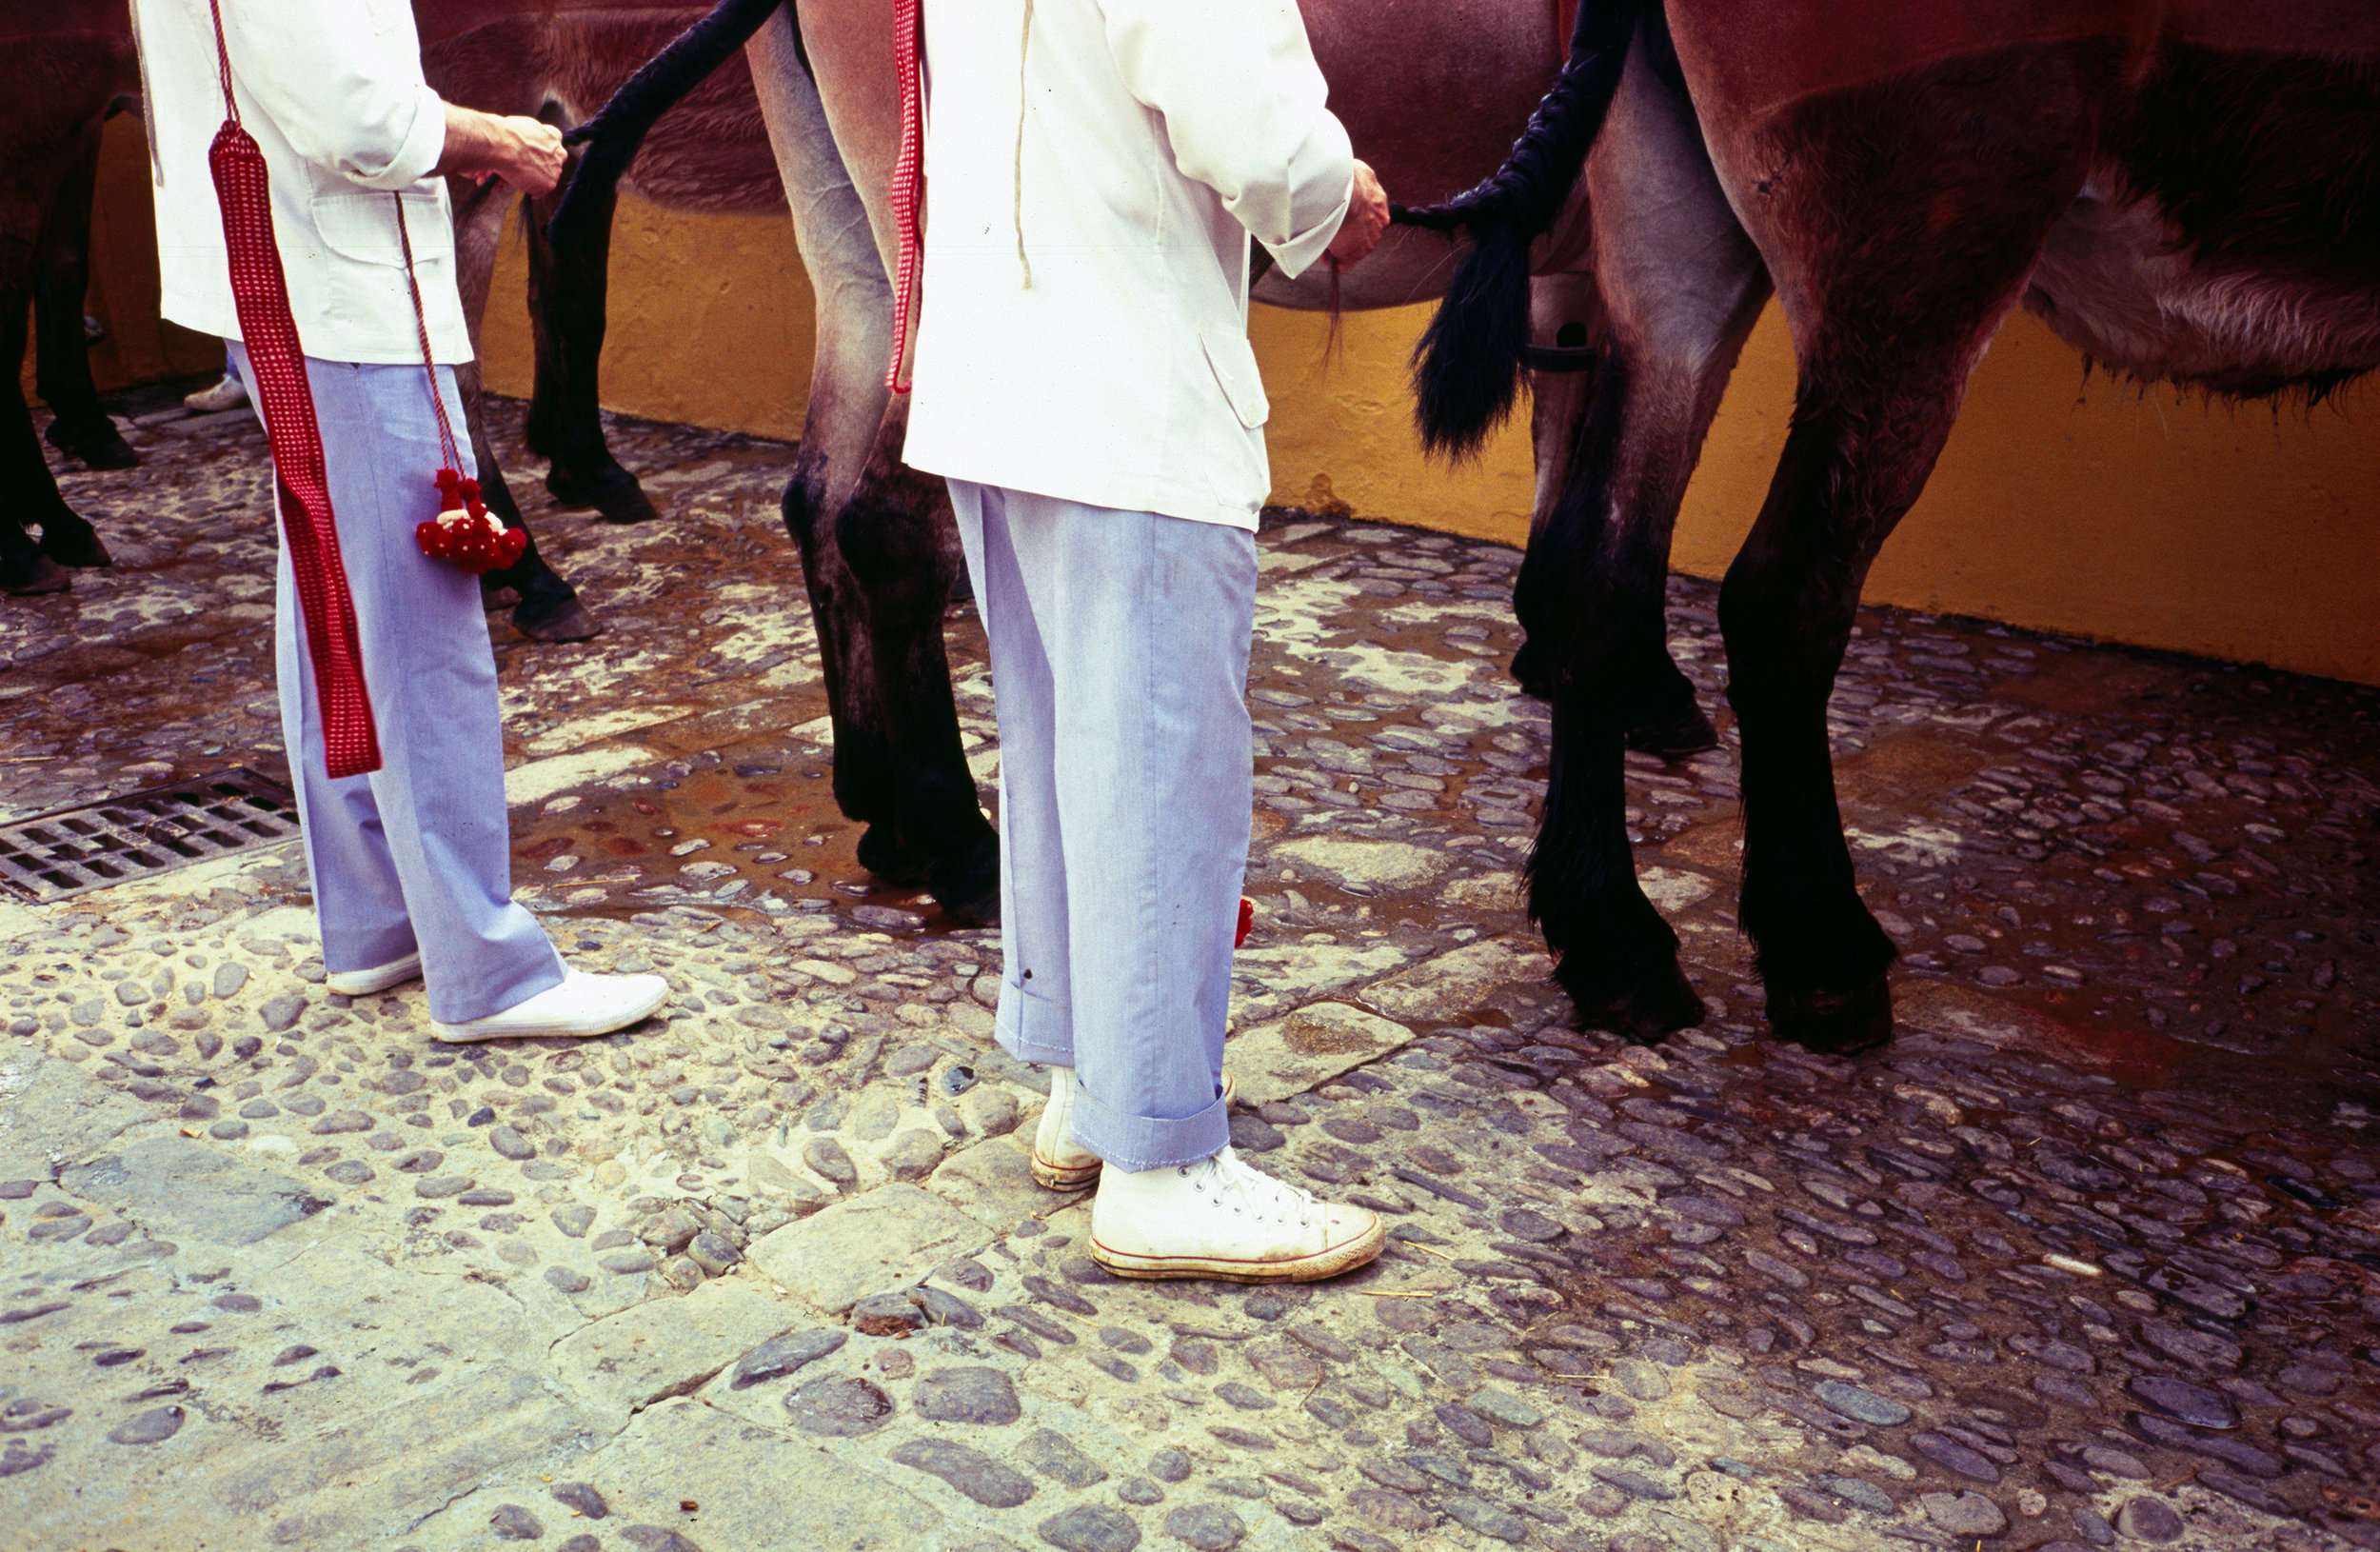 Andalusian Horses, so Carefully Dressed, 2017